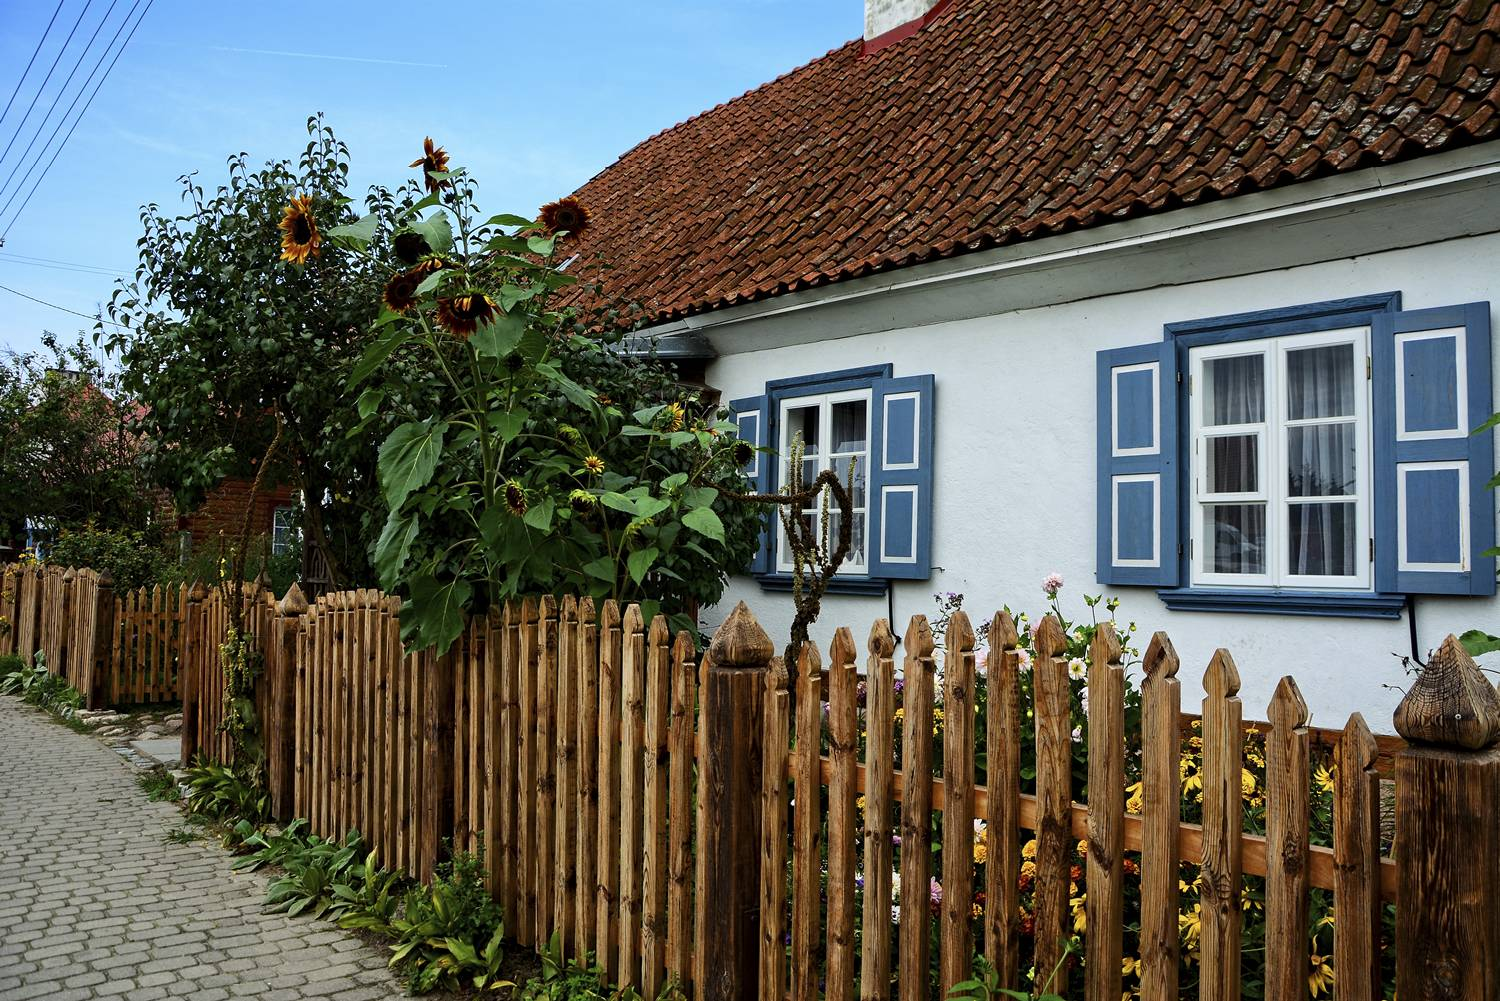 Podlasie. Find out what you've missed on your trip to Poland